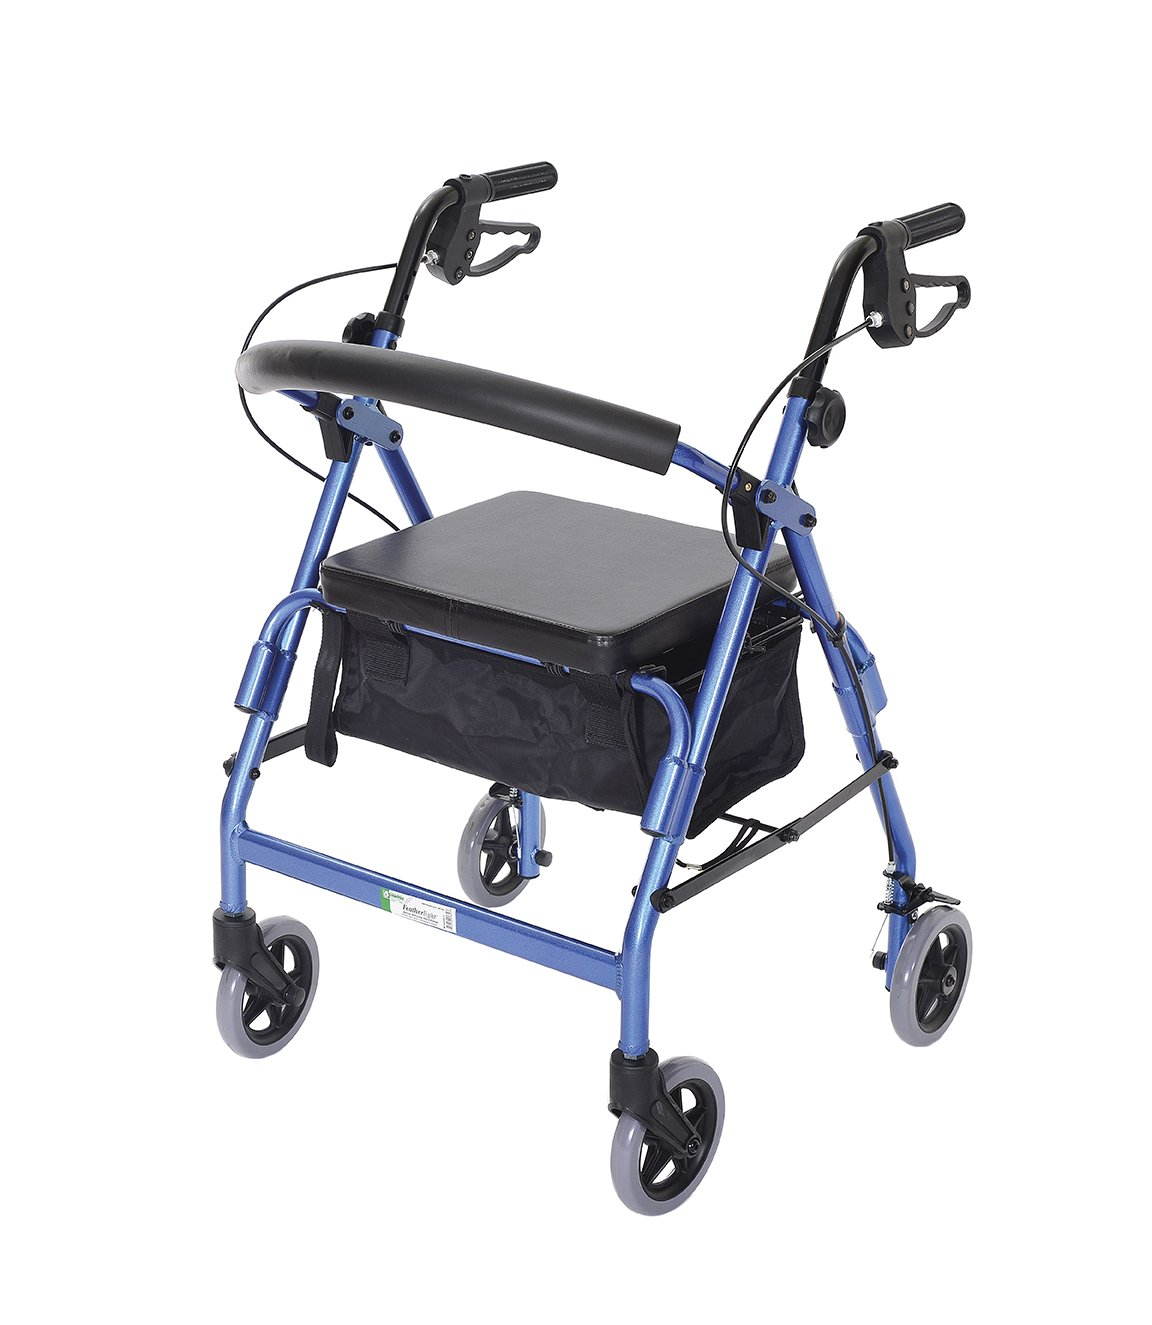 Essential Medical Supply W1650b-1 Feather light 4 Wheel Walker with loop Hand Brakes, Blue